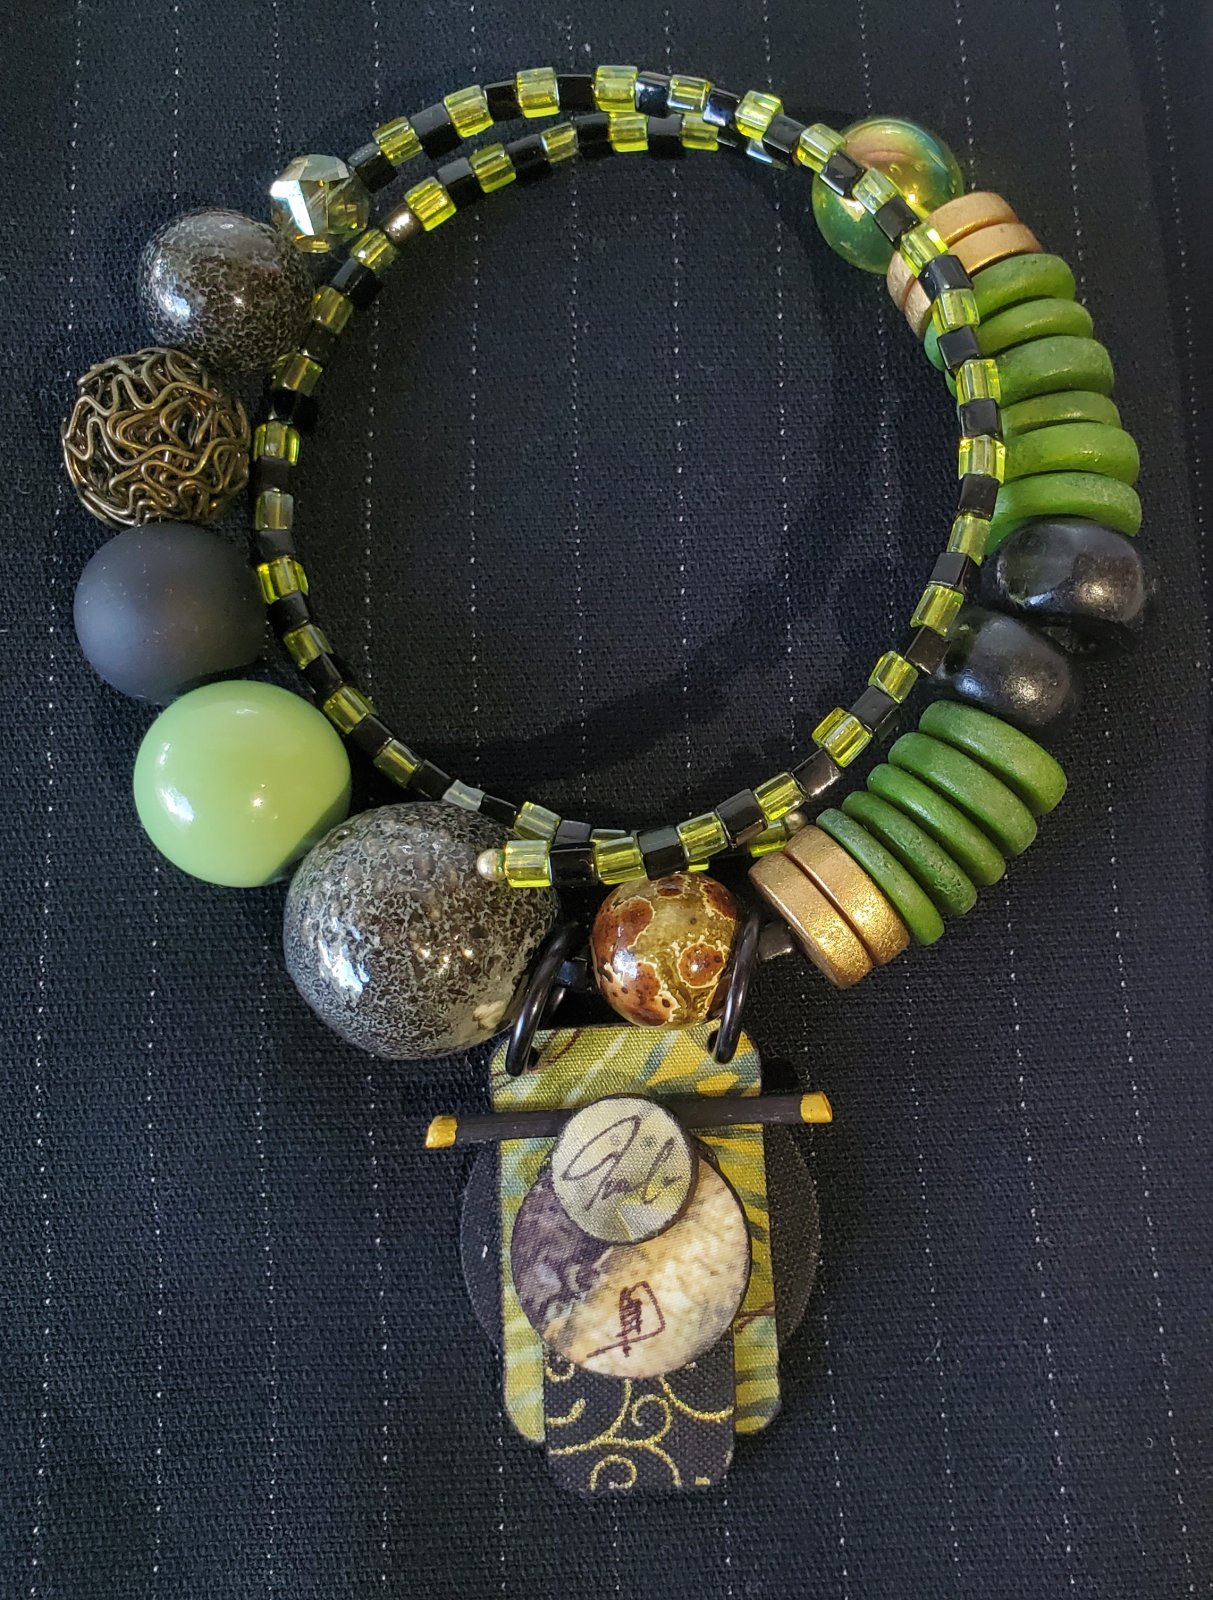 Bead necklace with pendant-NN-010061